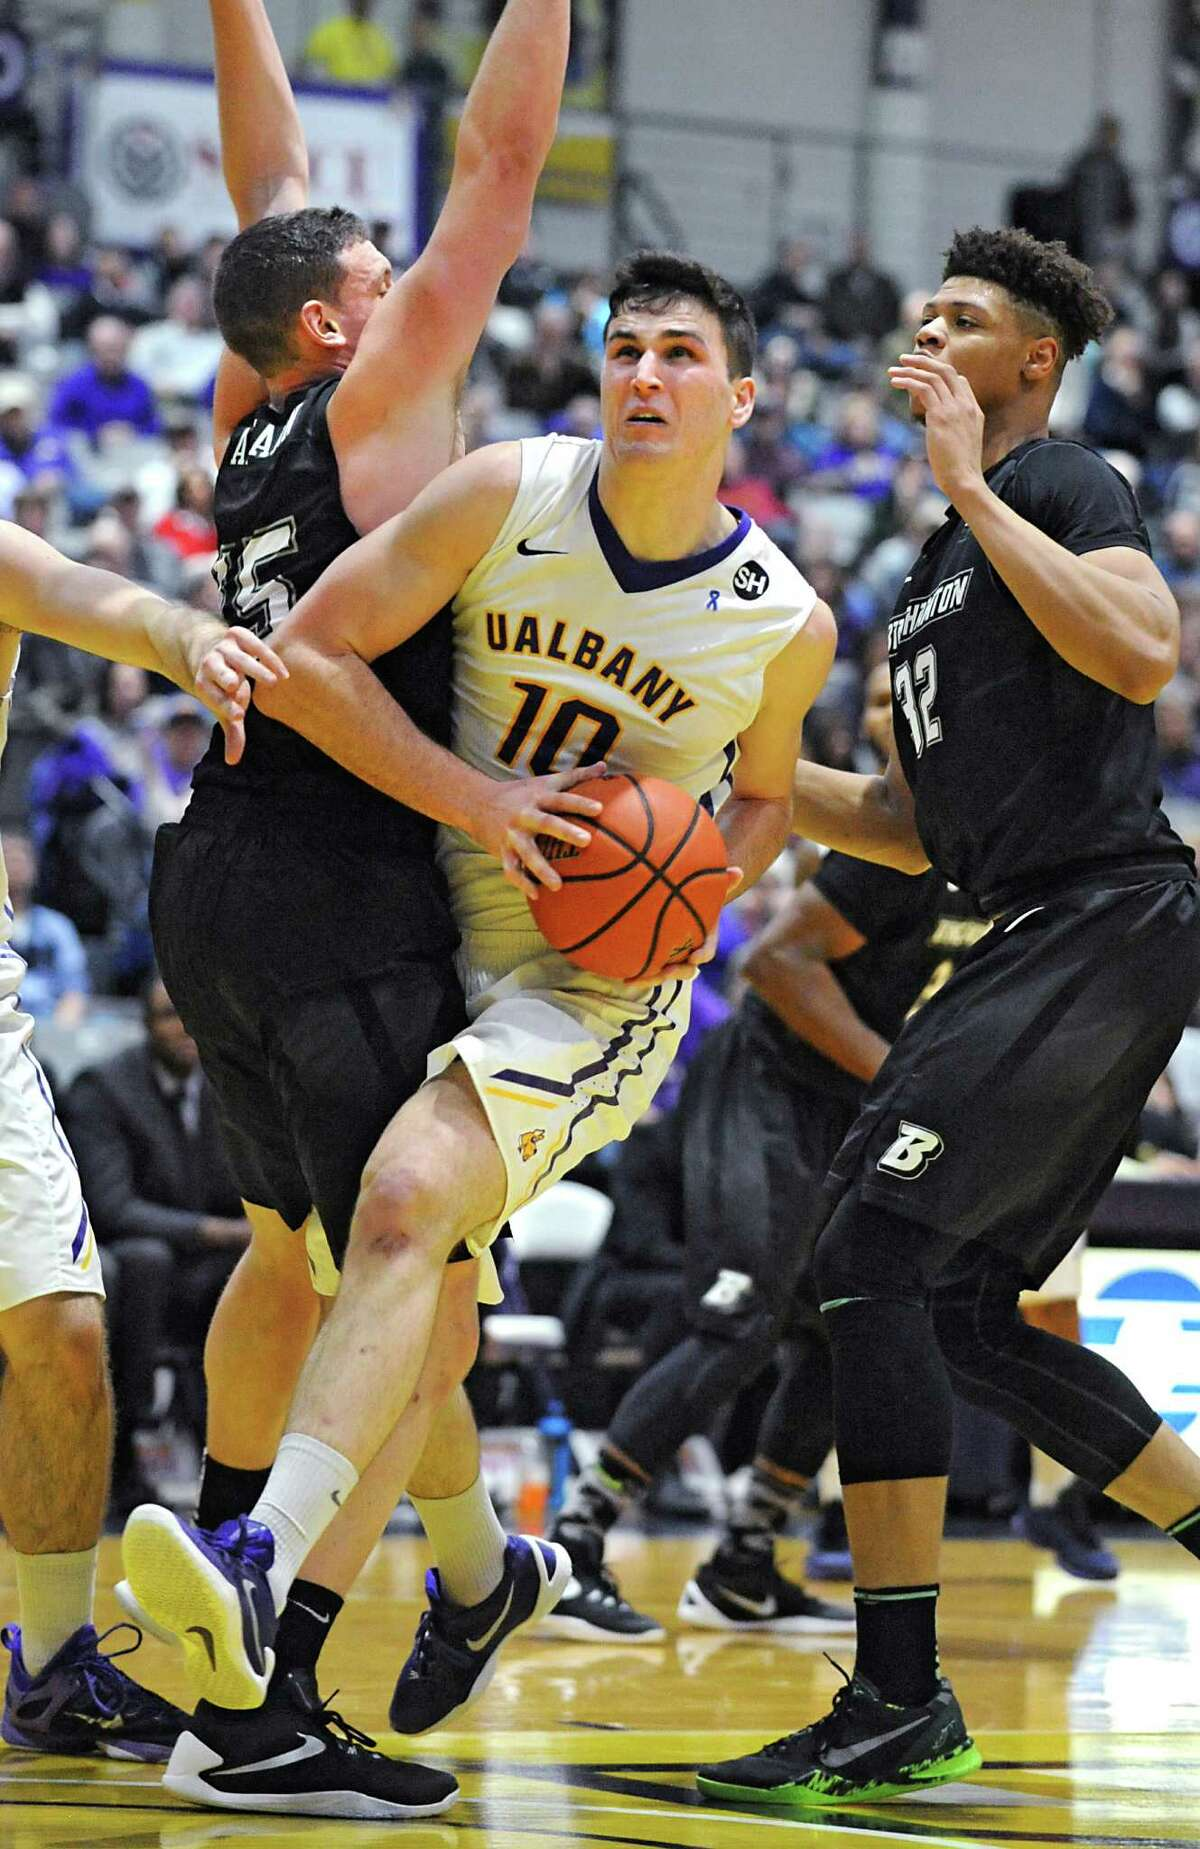 UAlbany's Mike Rowley drives to the basket defended by Binghamton's Bobby Ahearn, left, and Thomas Bruce during an America East Conference basketball game at the SEFCU Arena on Monday, Jan. 18, 2016 in Albany, N.Y. (Lori Van Buren / Times Union)